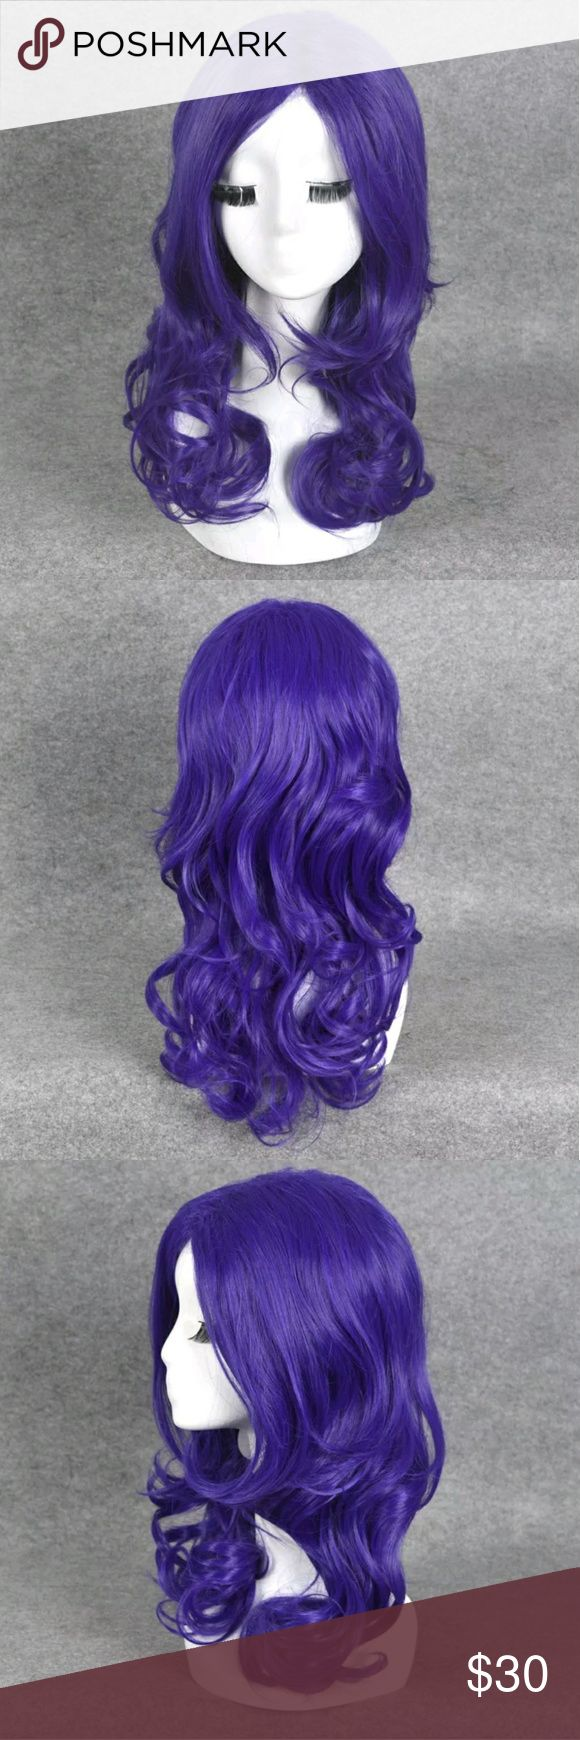 💜New Long Wavy Curly Long Purple Pretty Hair Wig New and unworn.  Purple. Long length. Curly/wavy texture.    My wigs are good quality synthetic fiber that you can heat style on a low temperature setting.    All wigs include a *FREE* wig cap if you buy it not.  (Not valid if purchased as an offer).   Halloween Cosplay My Little Pony Rarity Hot Topic Accessories Hair Accessories